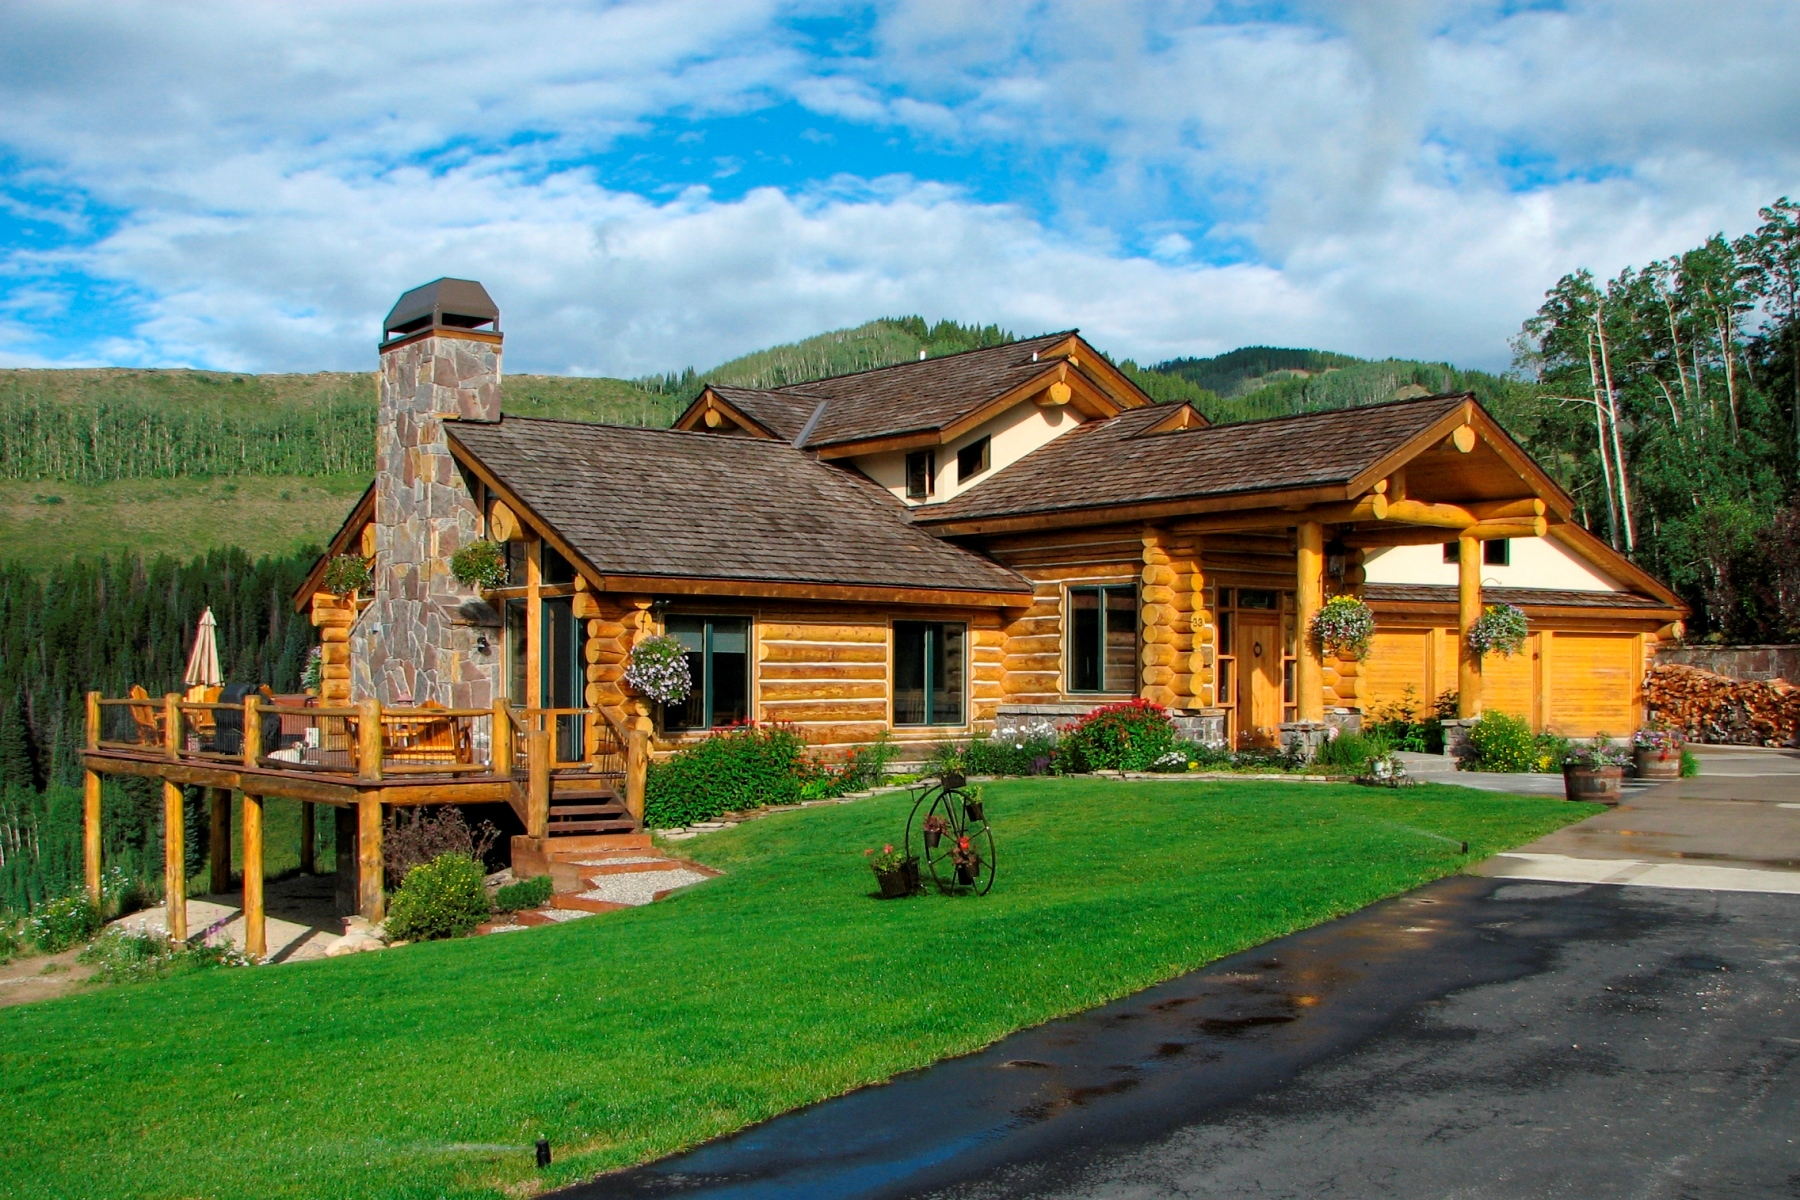 Casa Unifamiliar por un Venta en Immaculate Offering 33 Quartz Circle Crested Butte, Colorado, 81224 Estados Unidos